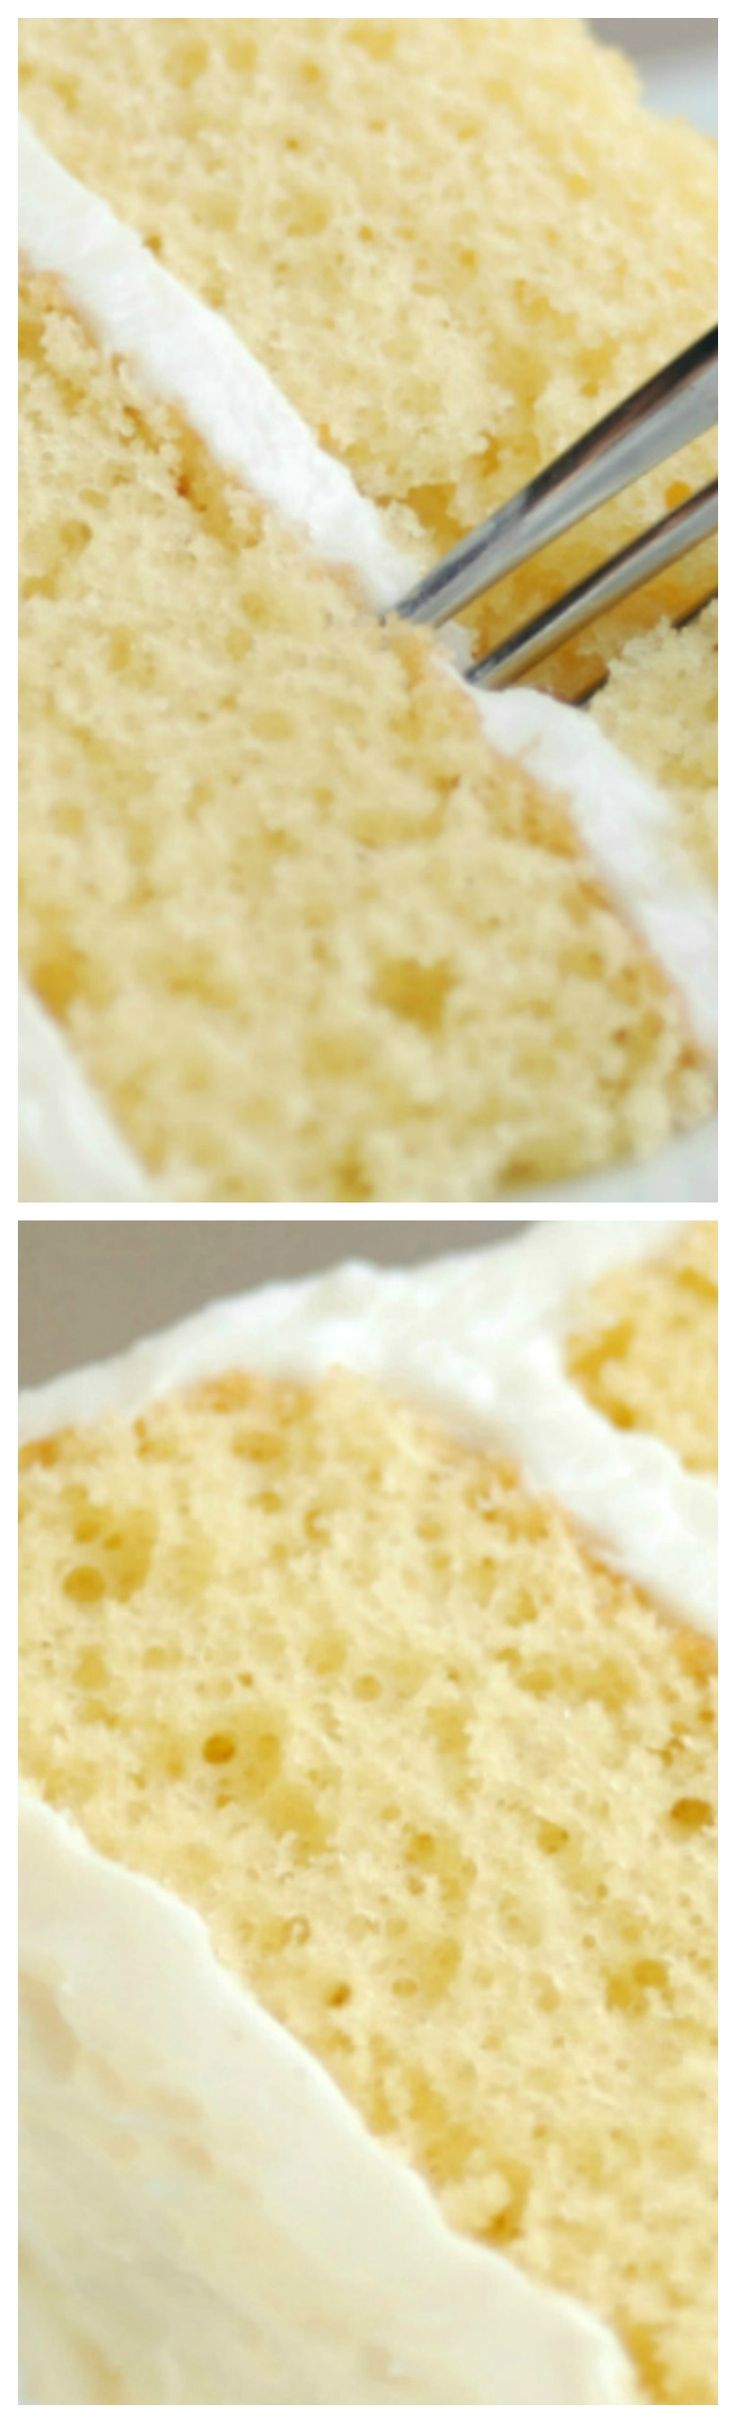 Vanilla Crazy Cake ~  Also known as Wacky Cake or Depression Cake, doesn't need dairy or eggs to make them. In fact, you don't even need to get a separate bowl dirty – you can make it right in the pan!